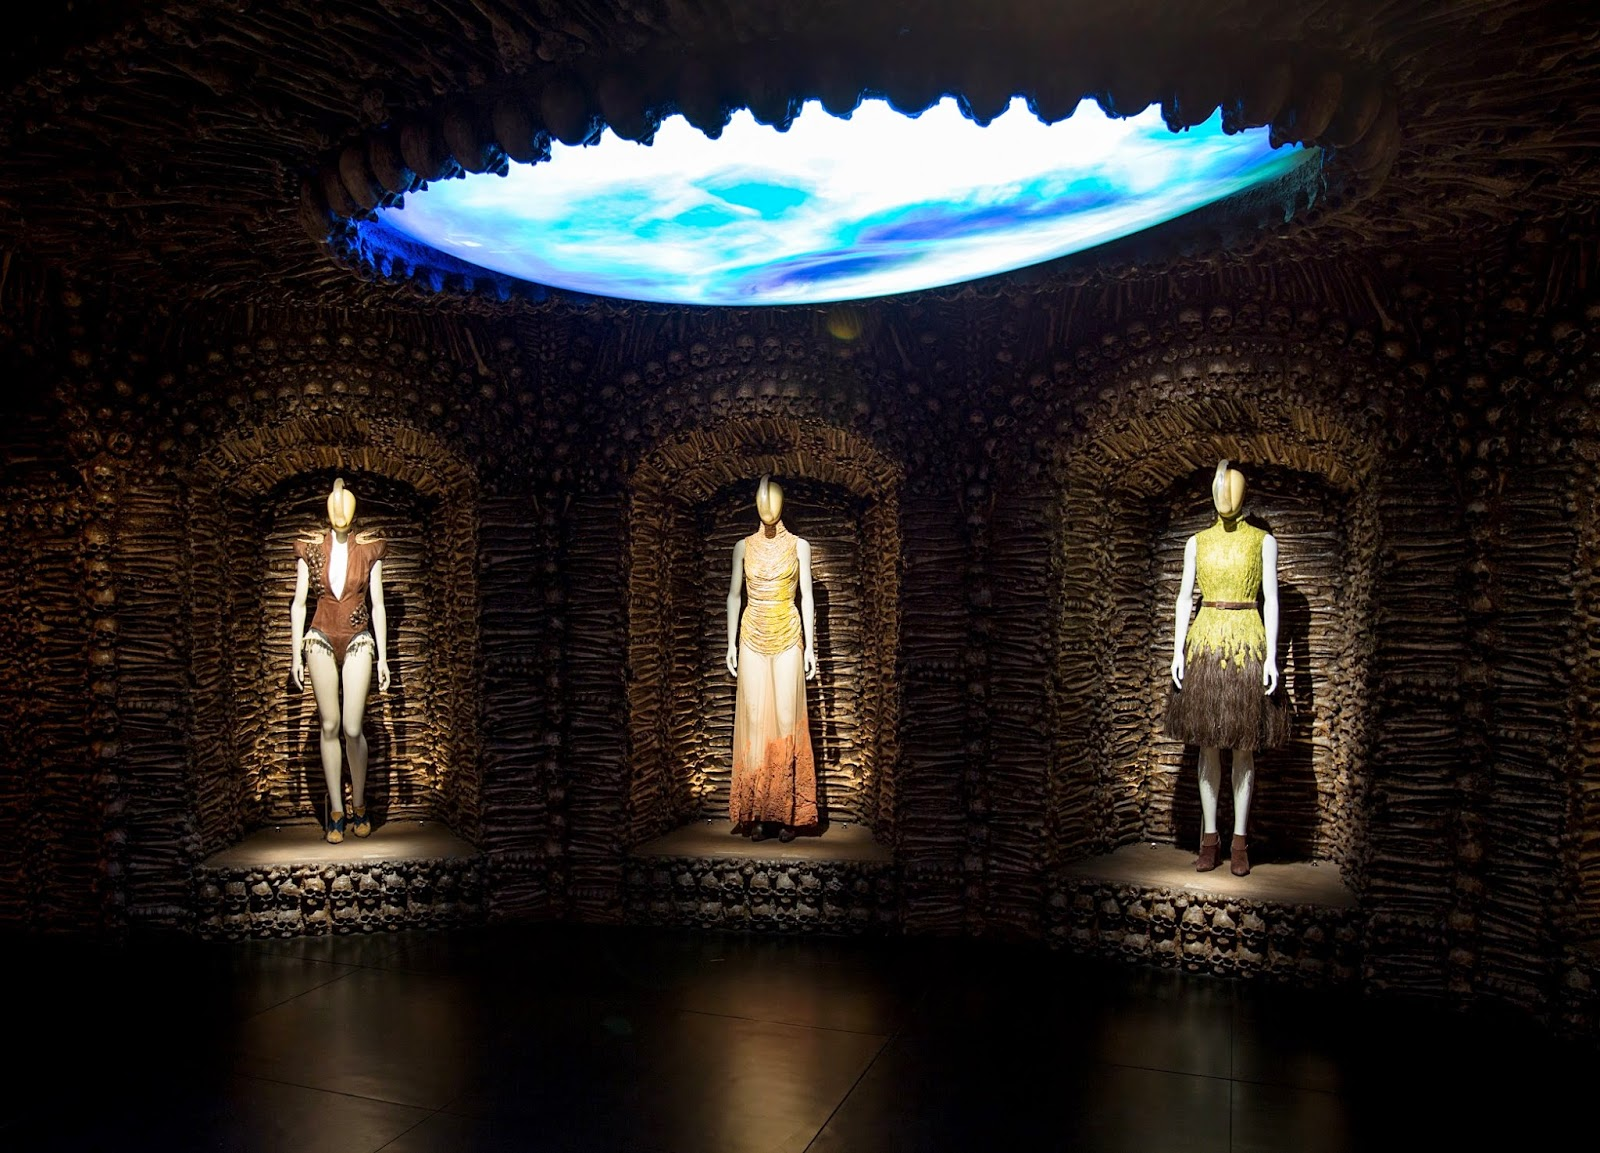 Alexander McQueen fashion installation Savage Beauty